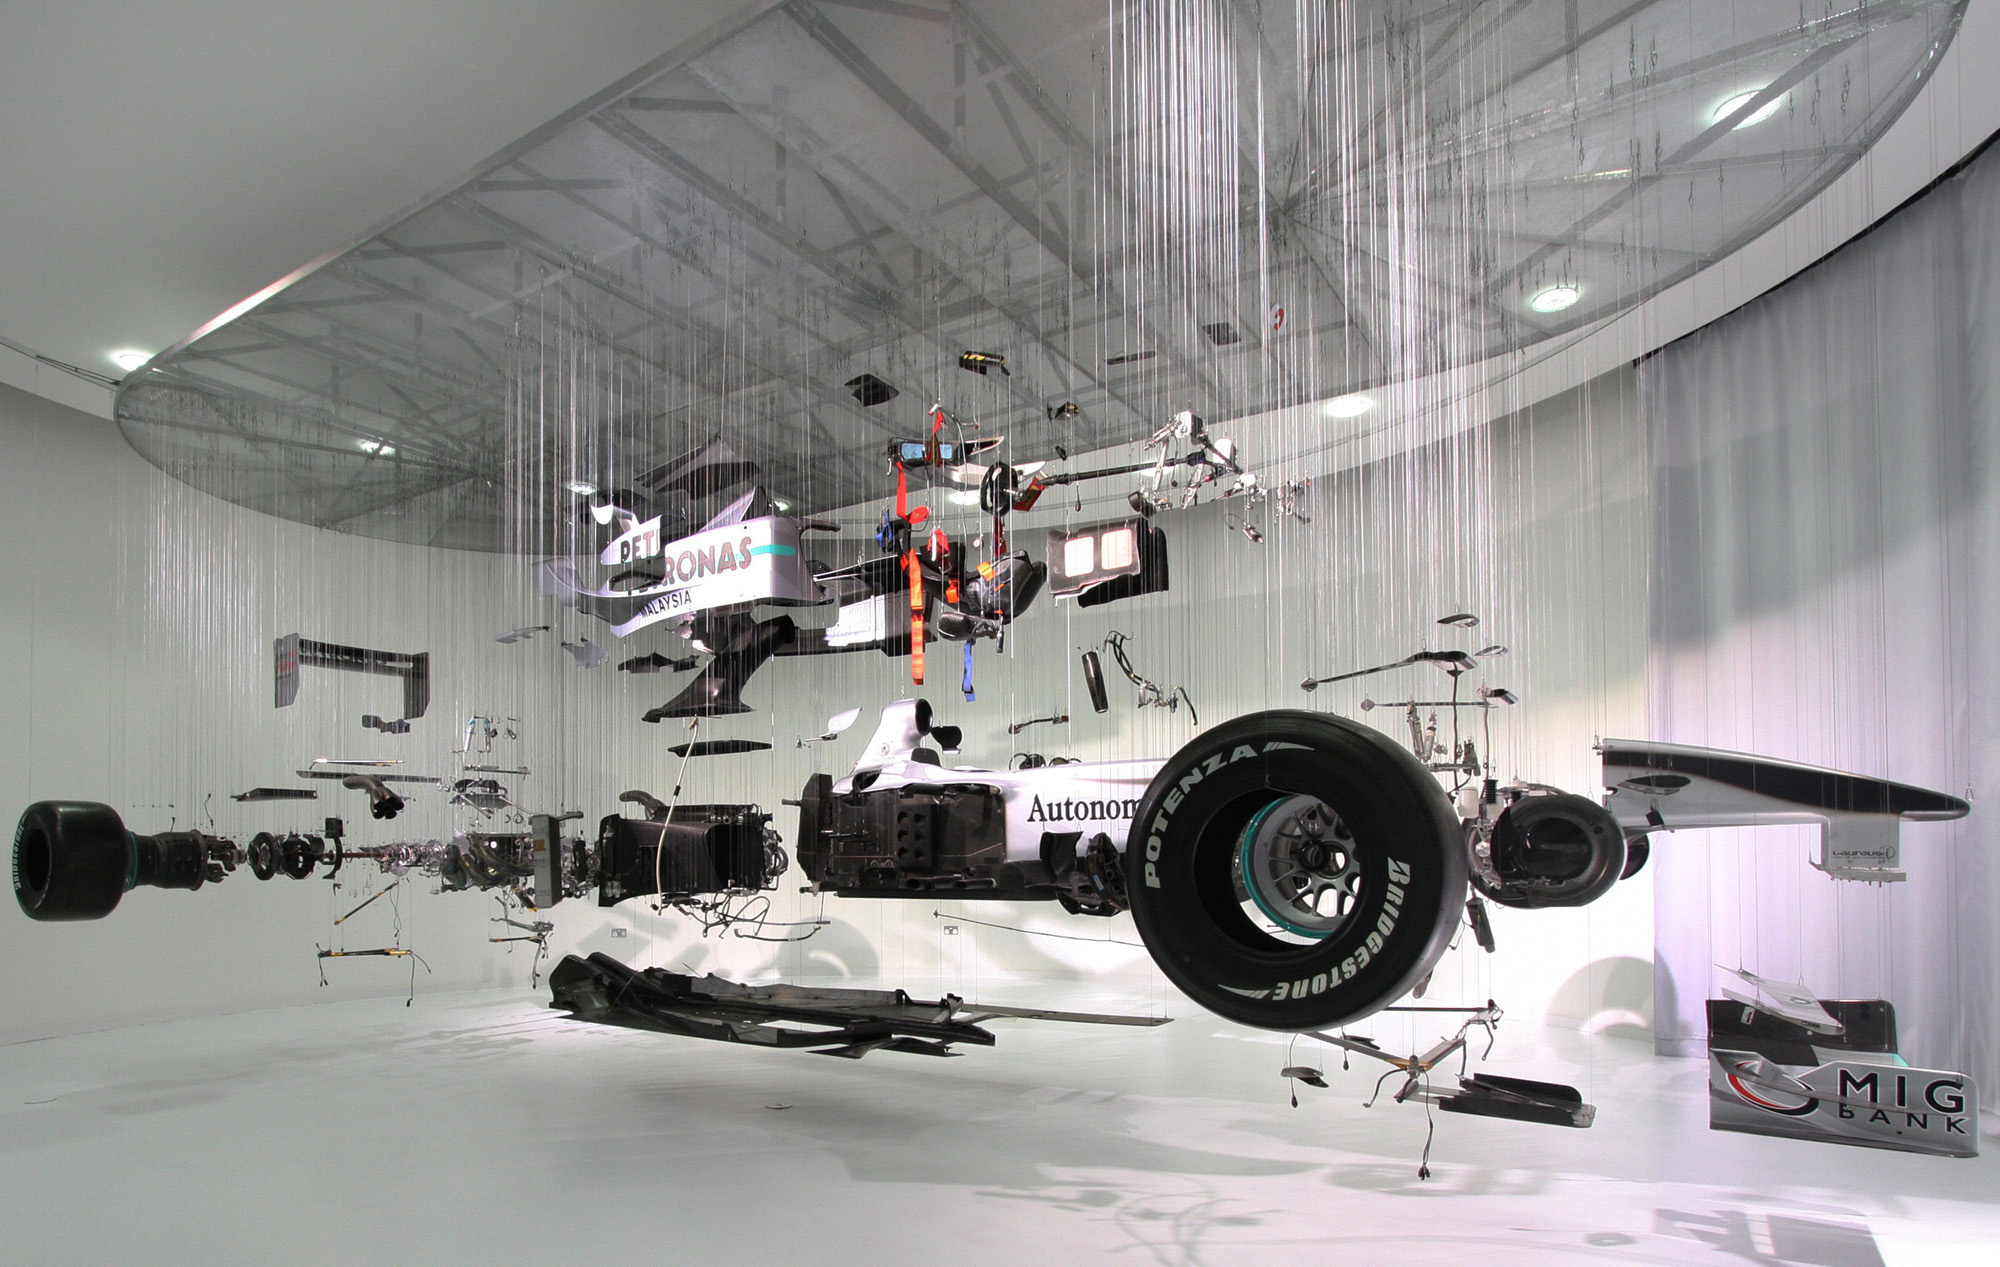 Mercedes benz f1 car in pieces iedei for Mercedes benz f1 car